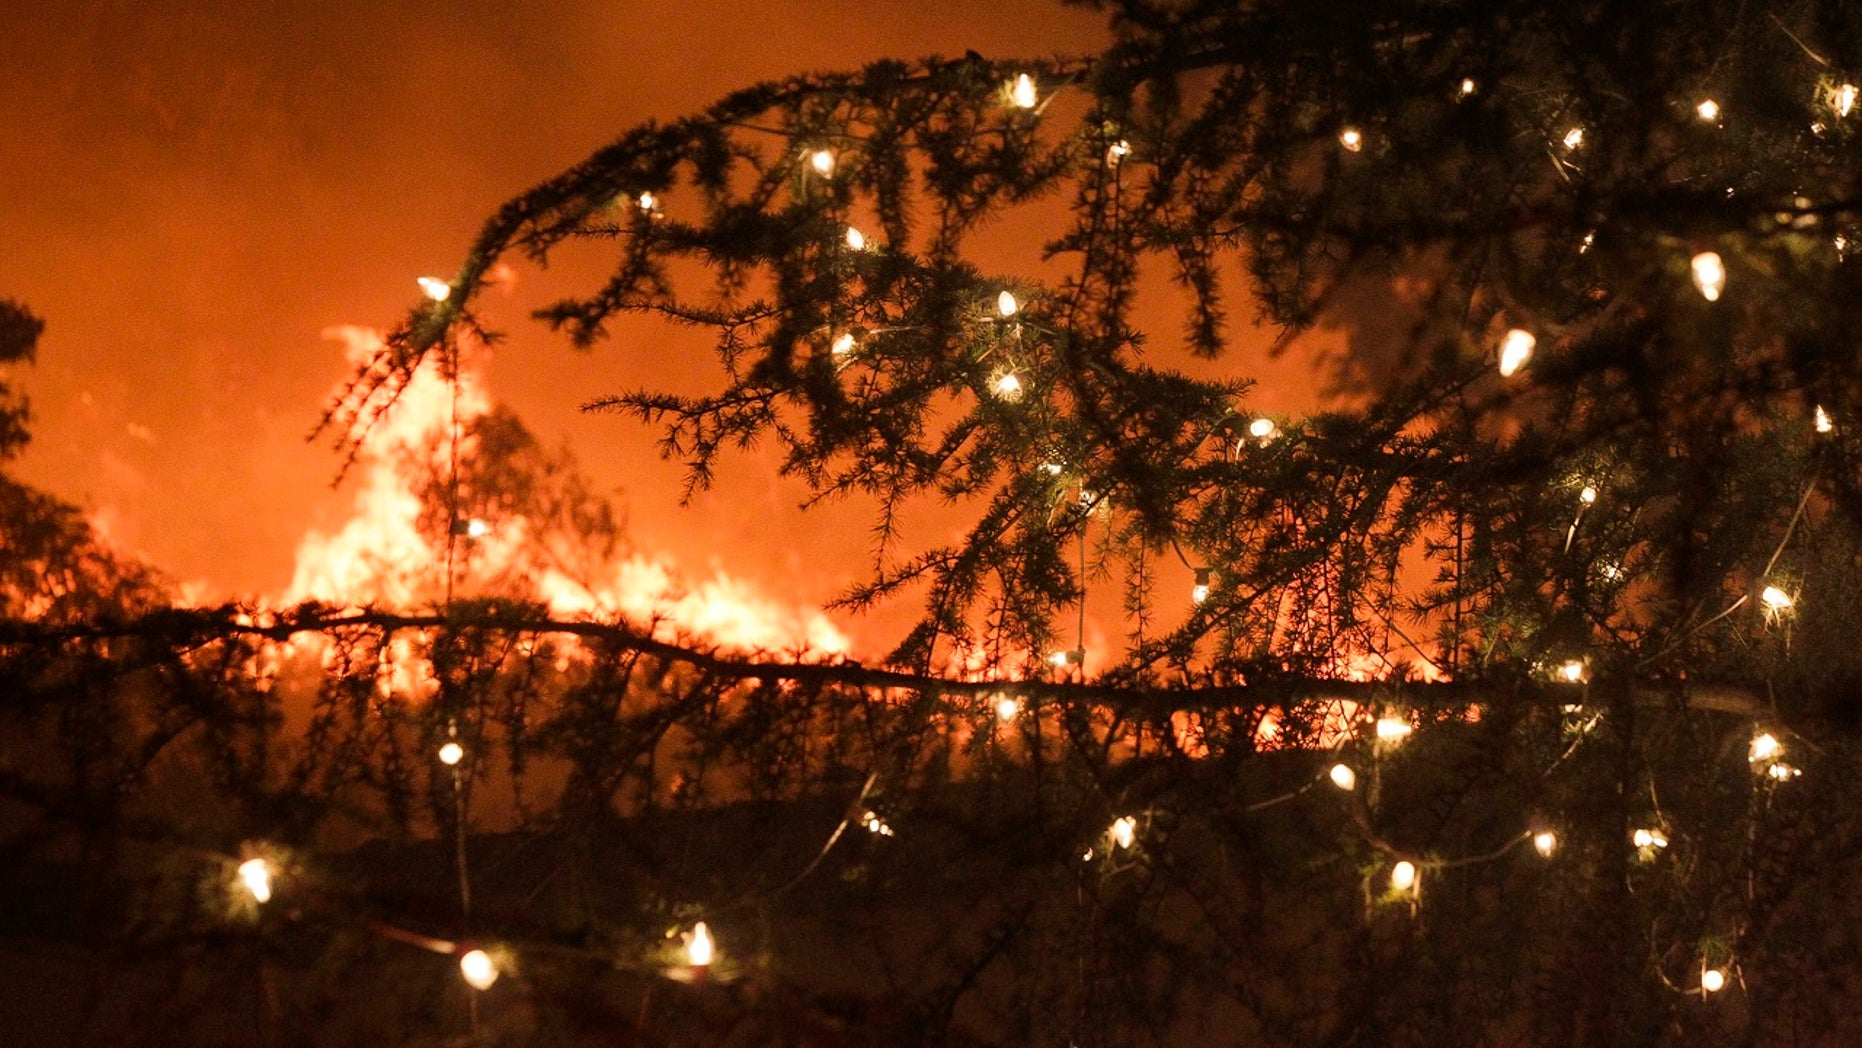 A Tennessee family's home caught on fire after leaving Christmas lights on all night.